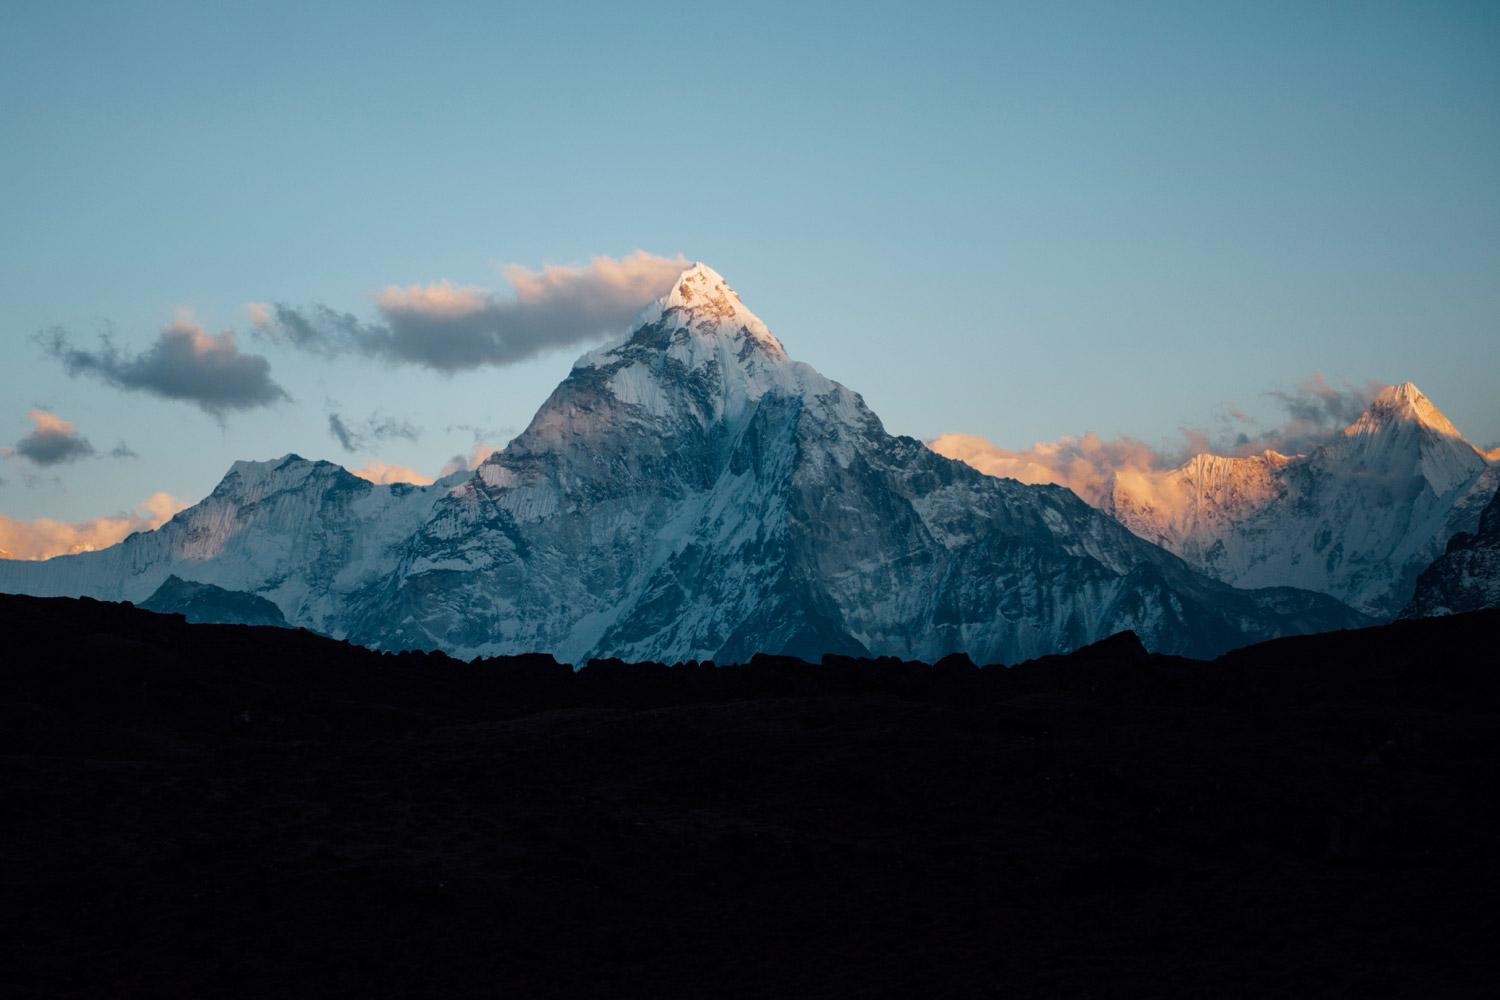 Katie_Mitchell_Photography_Travel_Photography_Everest_Nepal_12.jpg